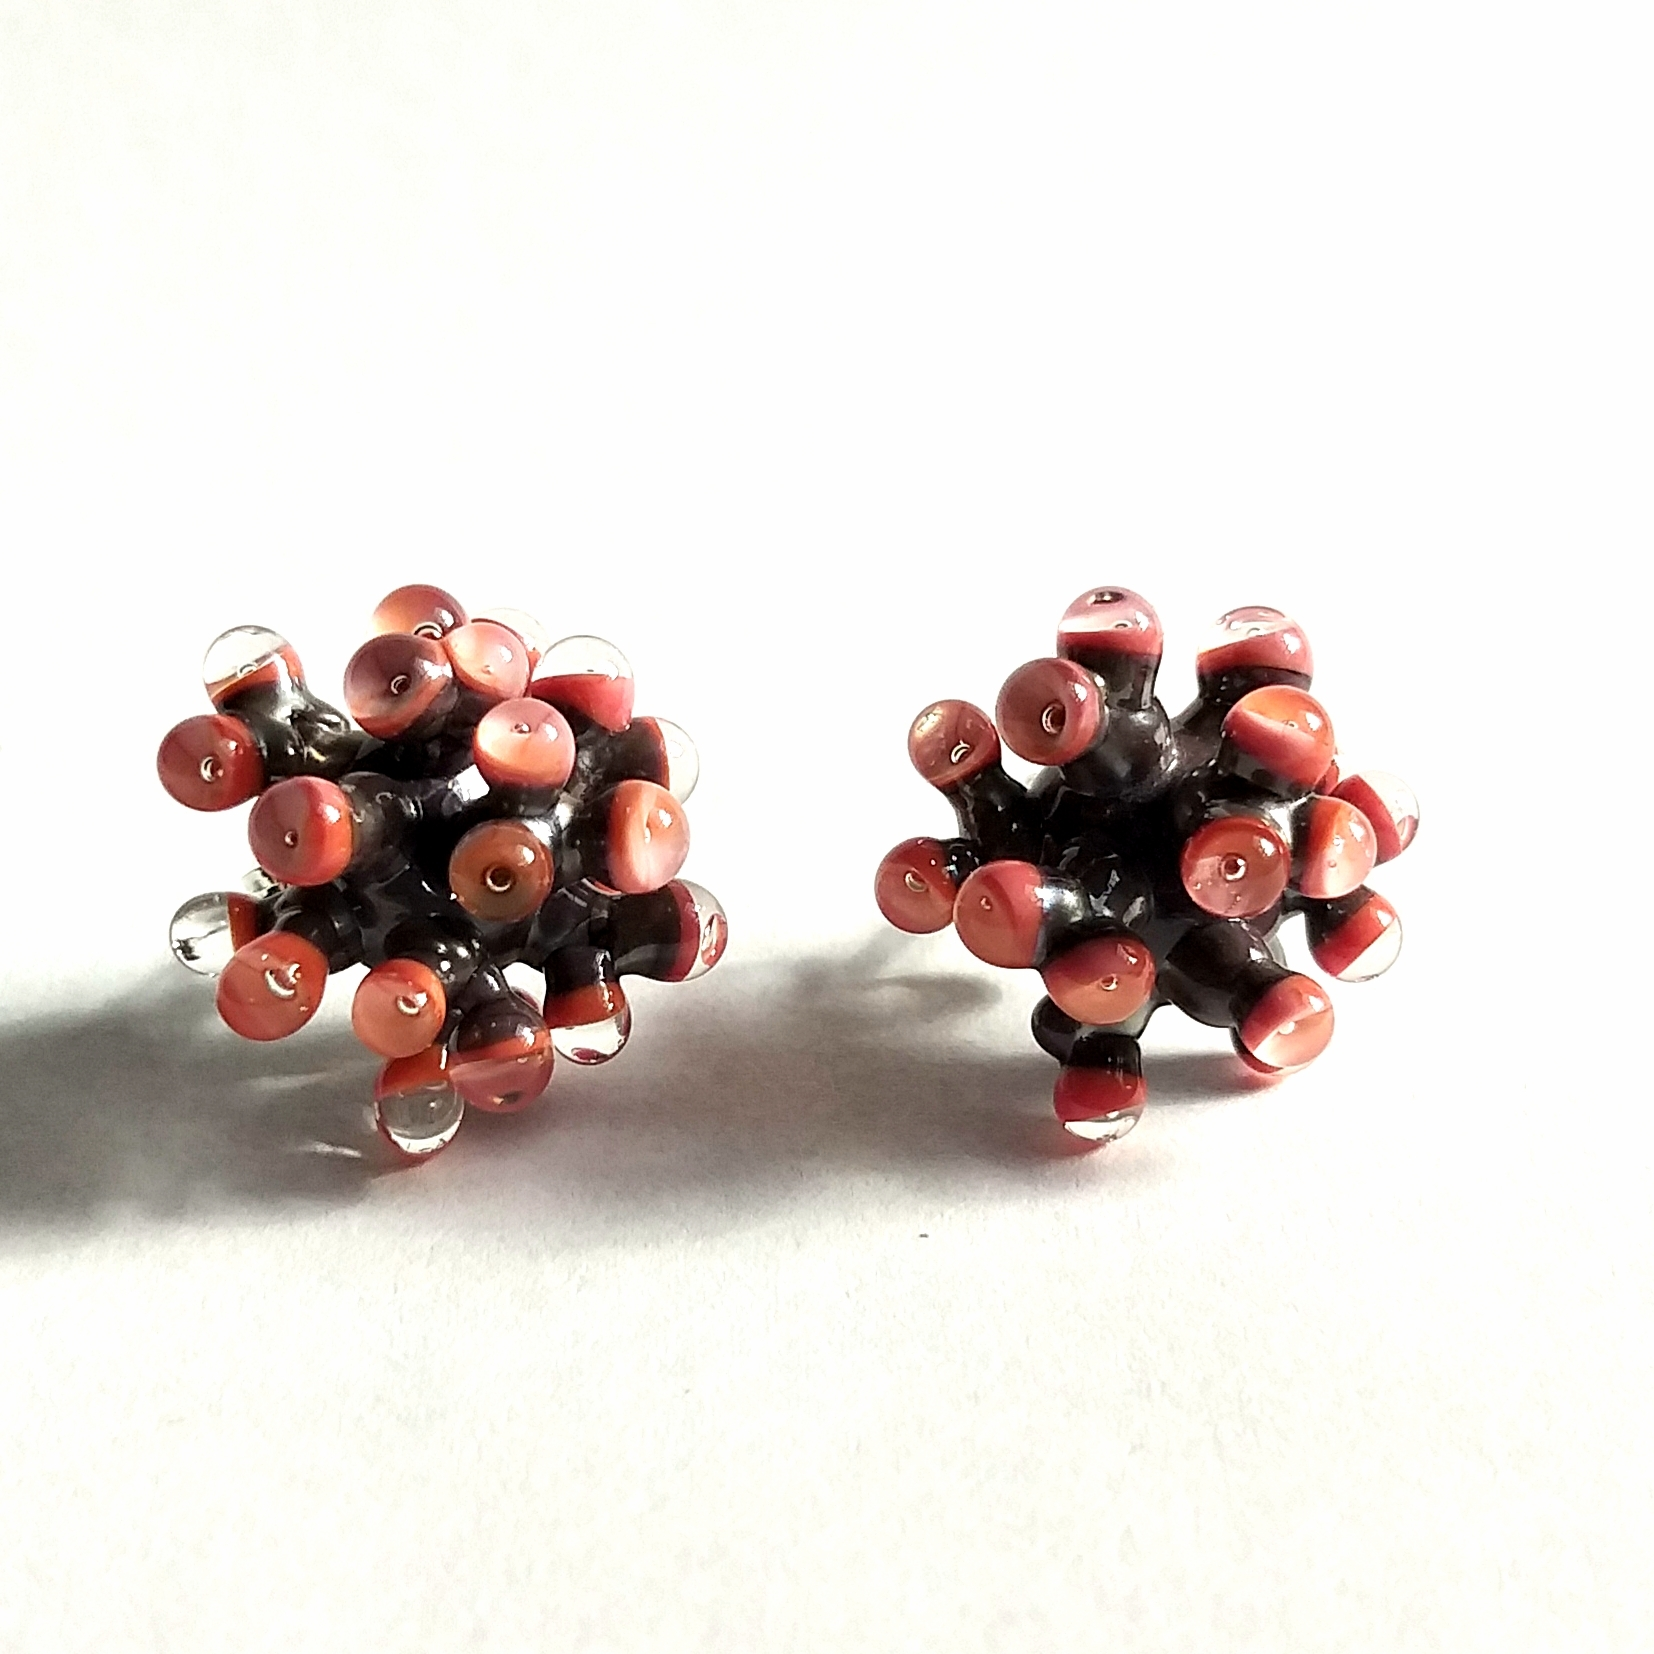 Grey and Peach Anemone Earrings by Cecilia Lopez-Bravo